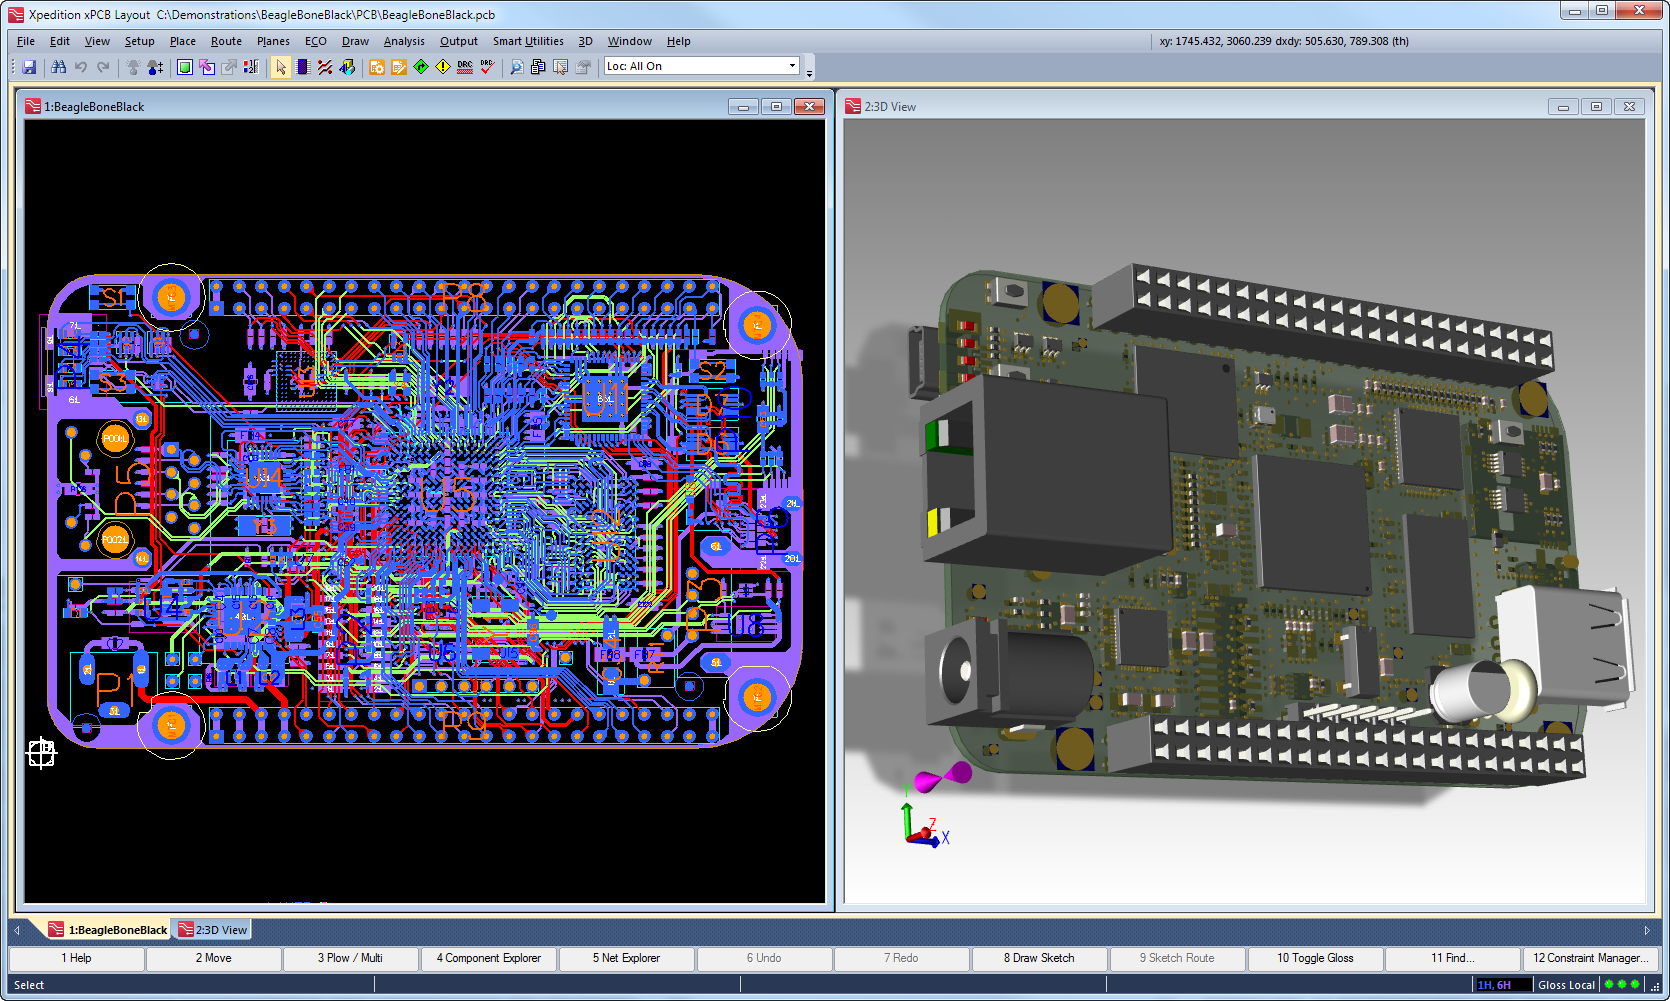 Mentor Puts 3d Design At The Heart Of Pcb Place And Route